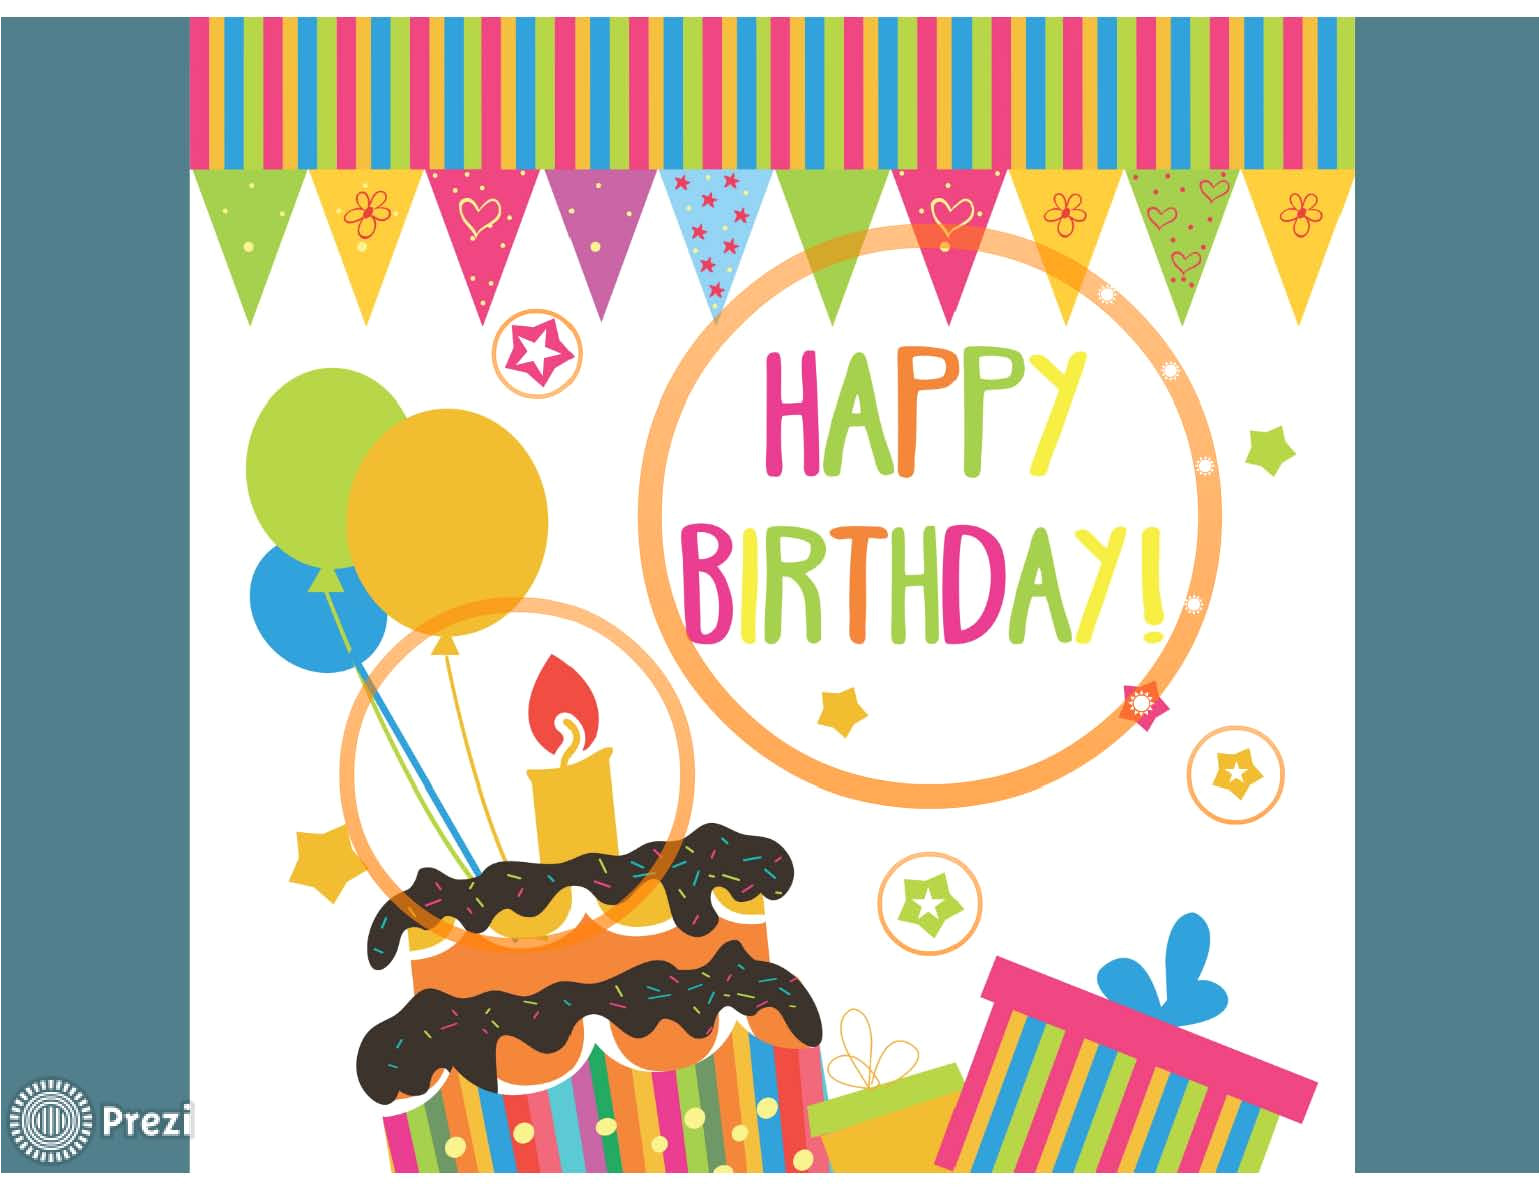 Prezi Birthday Template Happy Birthday 4 Prezi Premium Templates